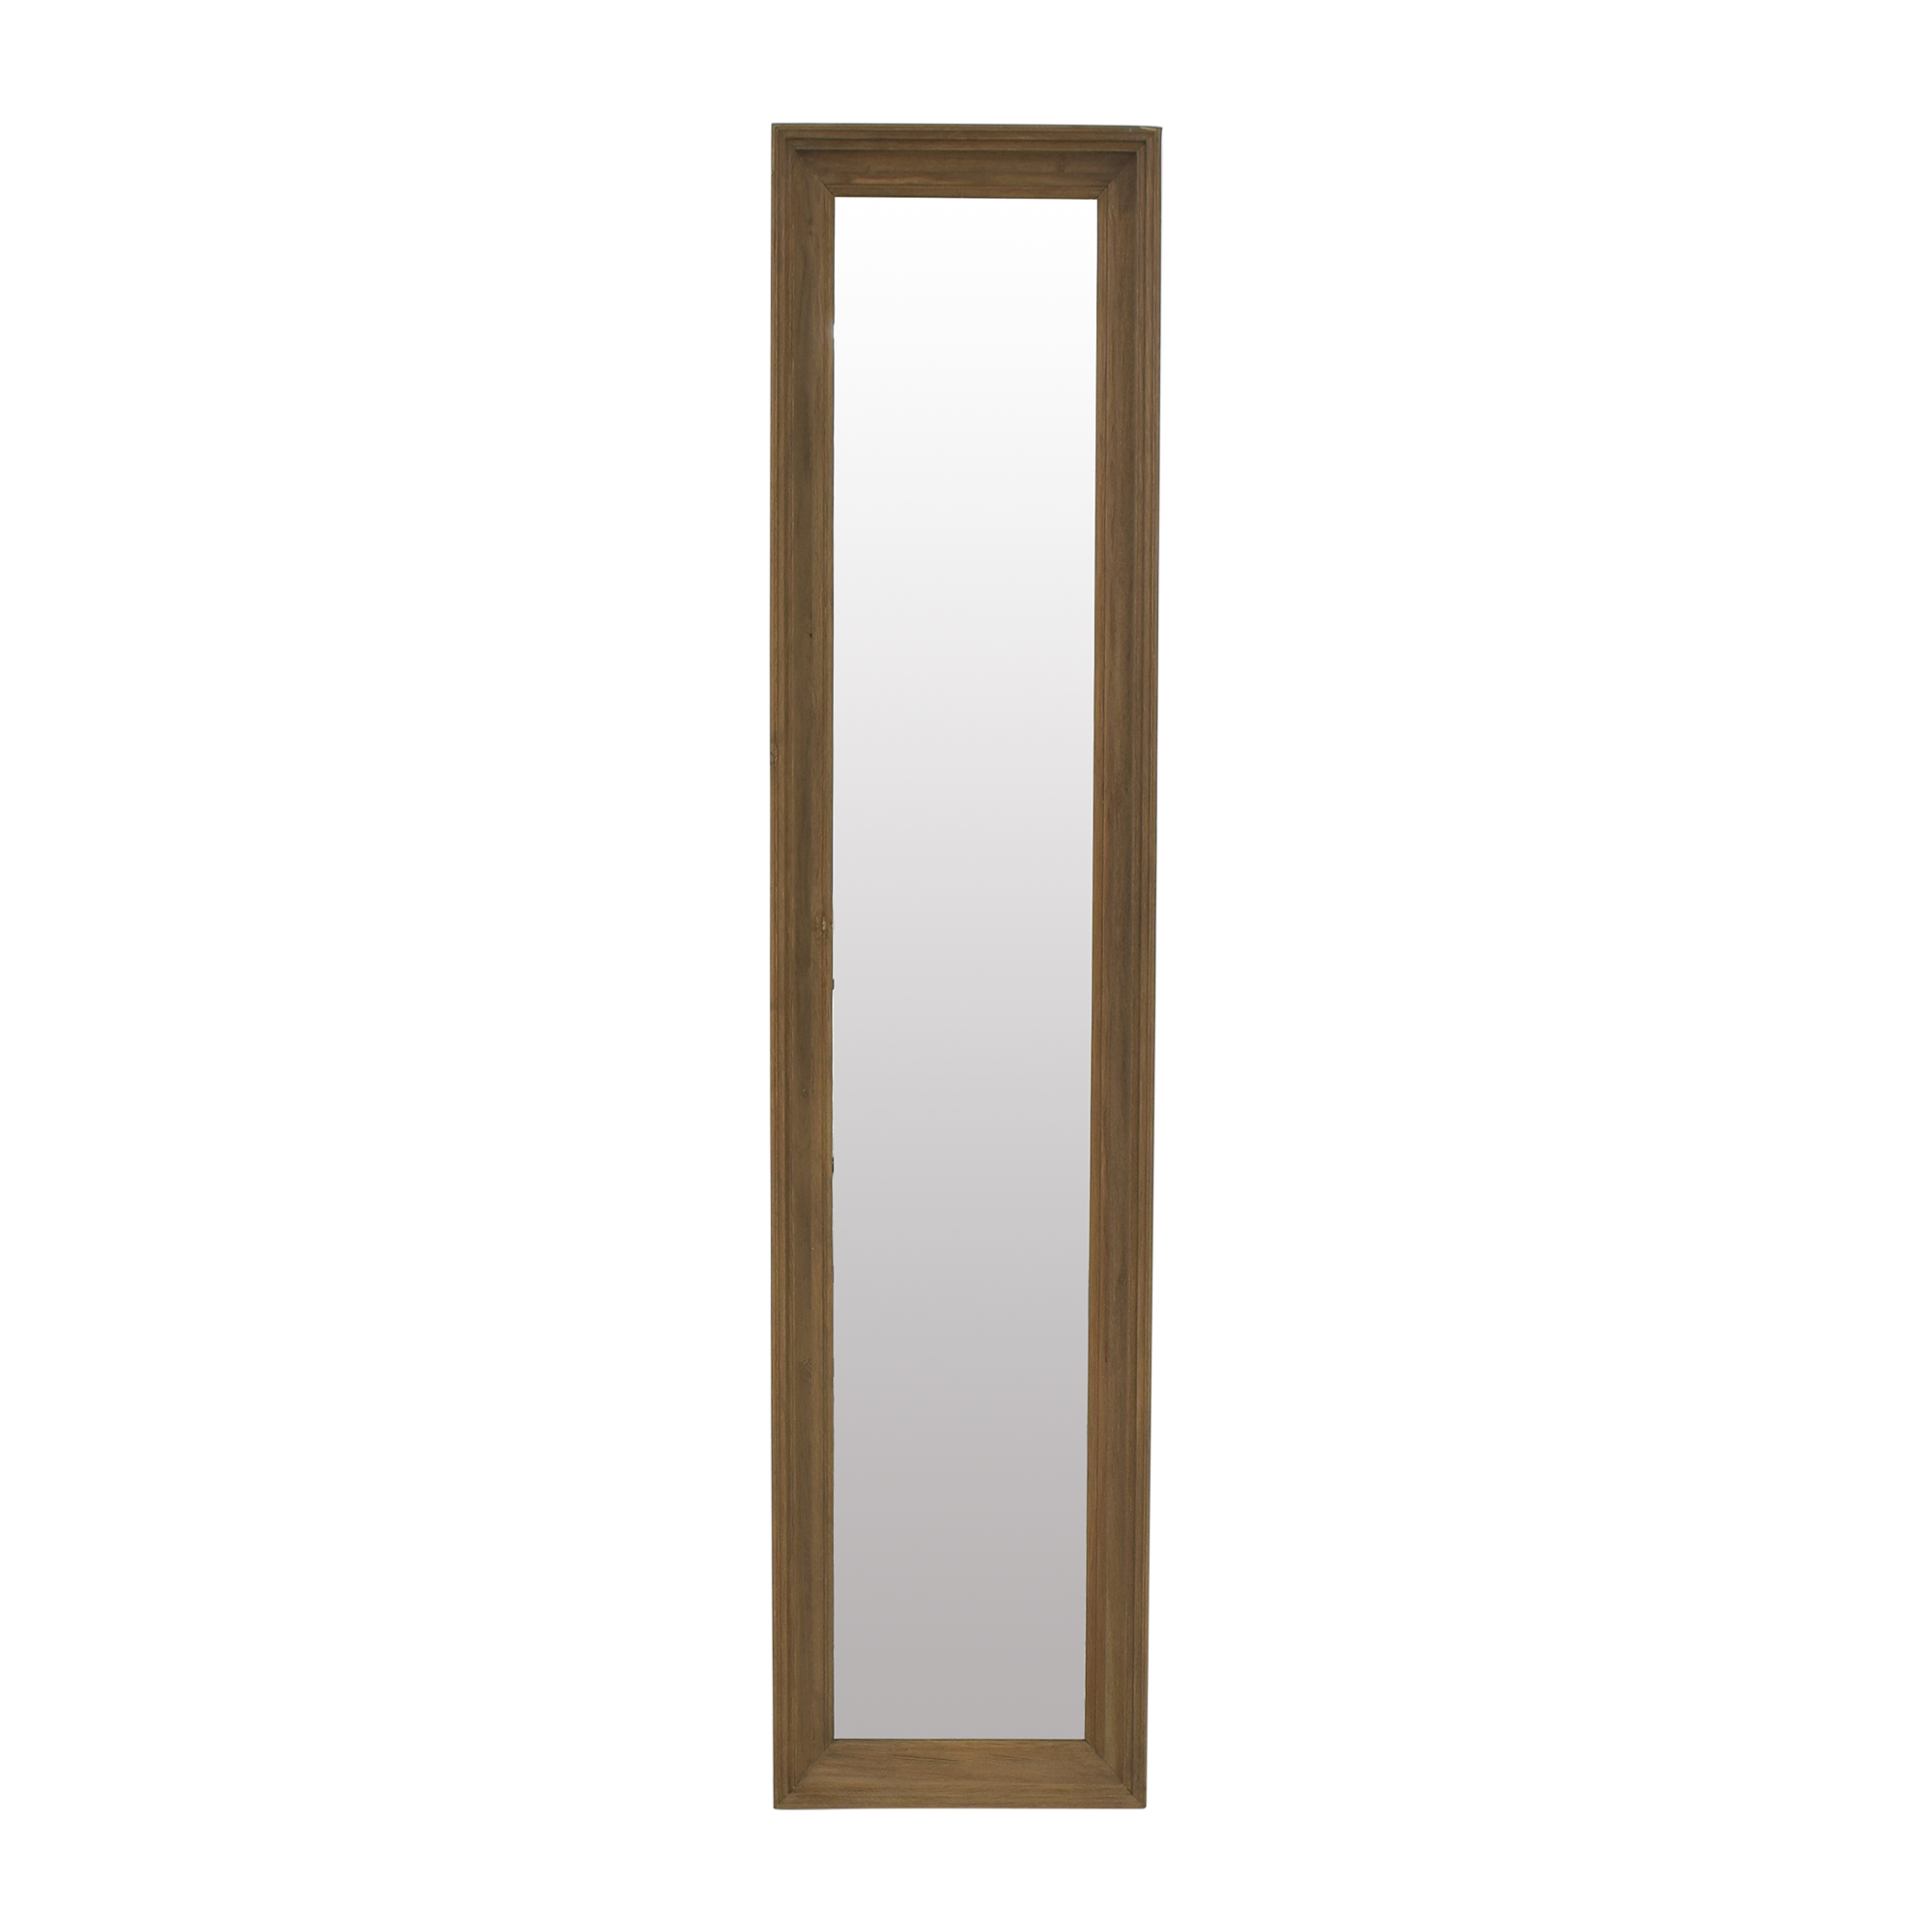 Restoration Hardware Restoration Hardware Marseilles Leaner Mirror for sale